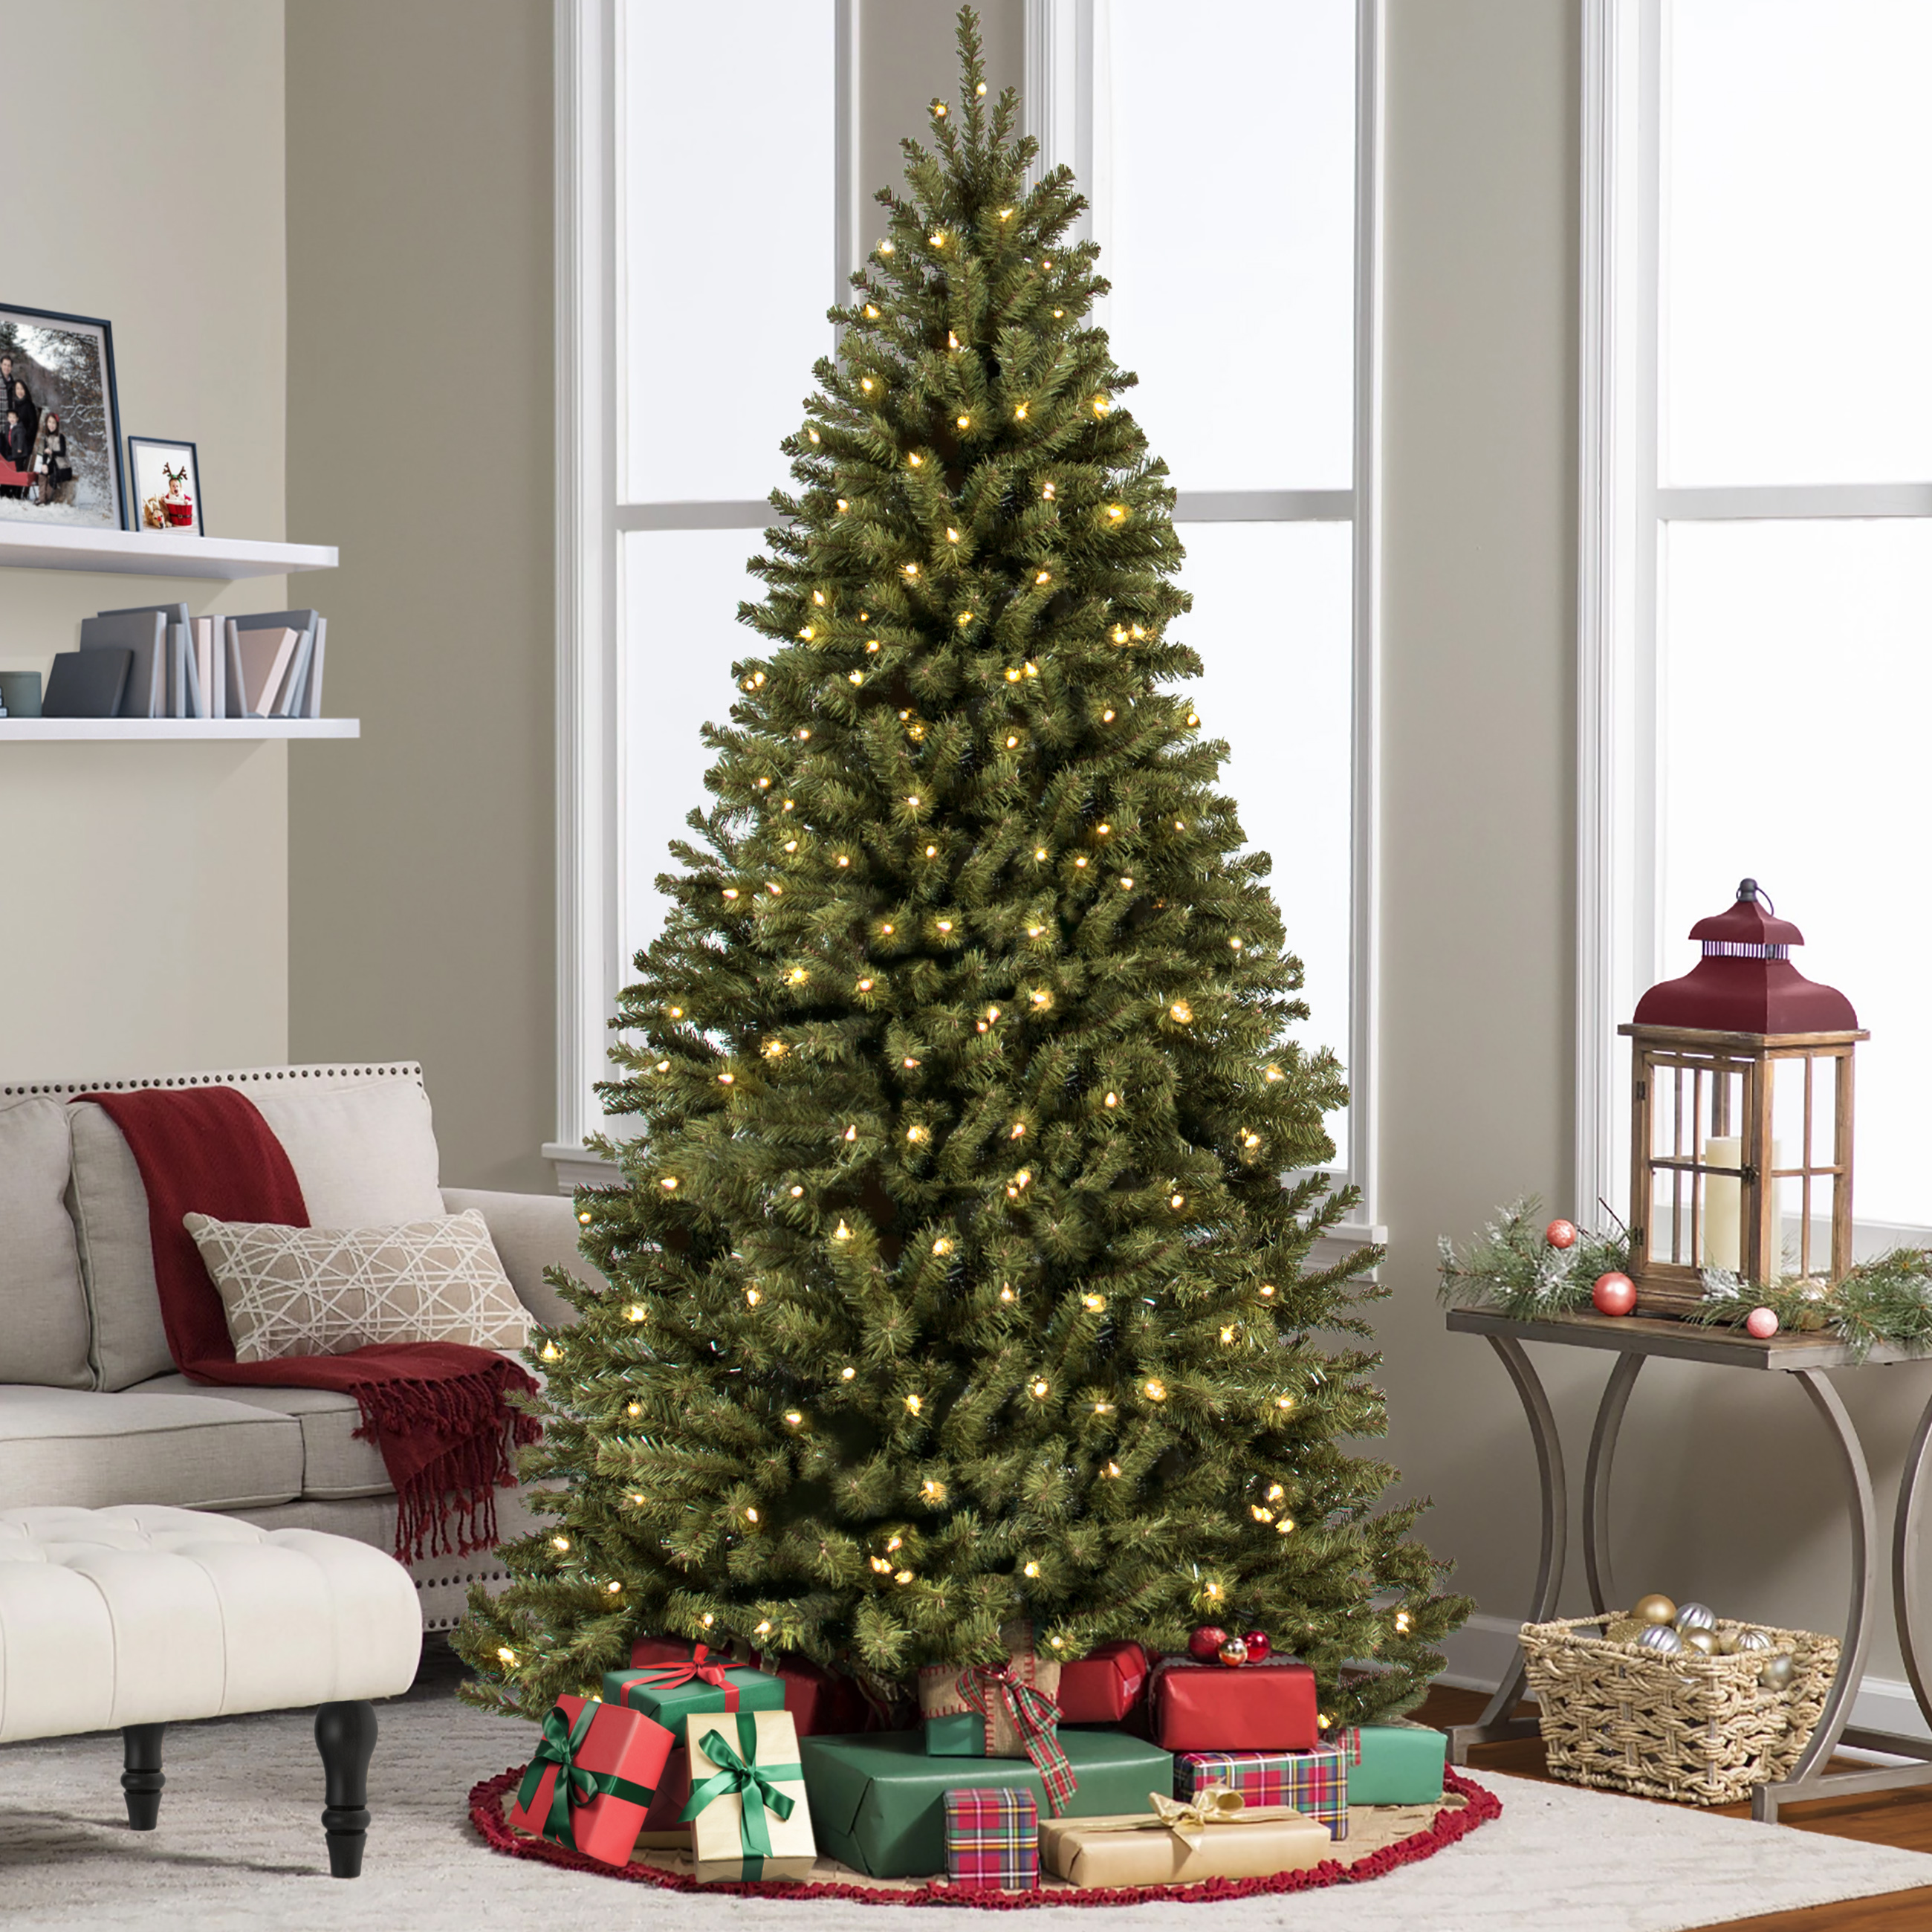 Crestwood small artificial christmas tree with plastic bronze pot - National Tree Pre Lit 24 Majestic Fir Artificial Christmas Tree In Gold Cloth Bag With 35 Clear Lights Walmart Com